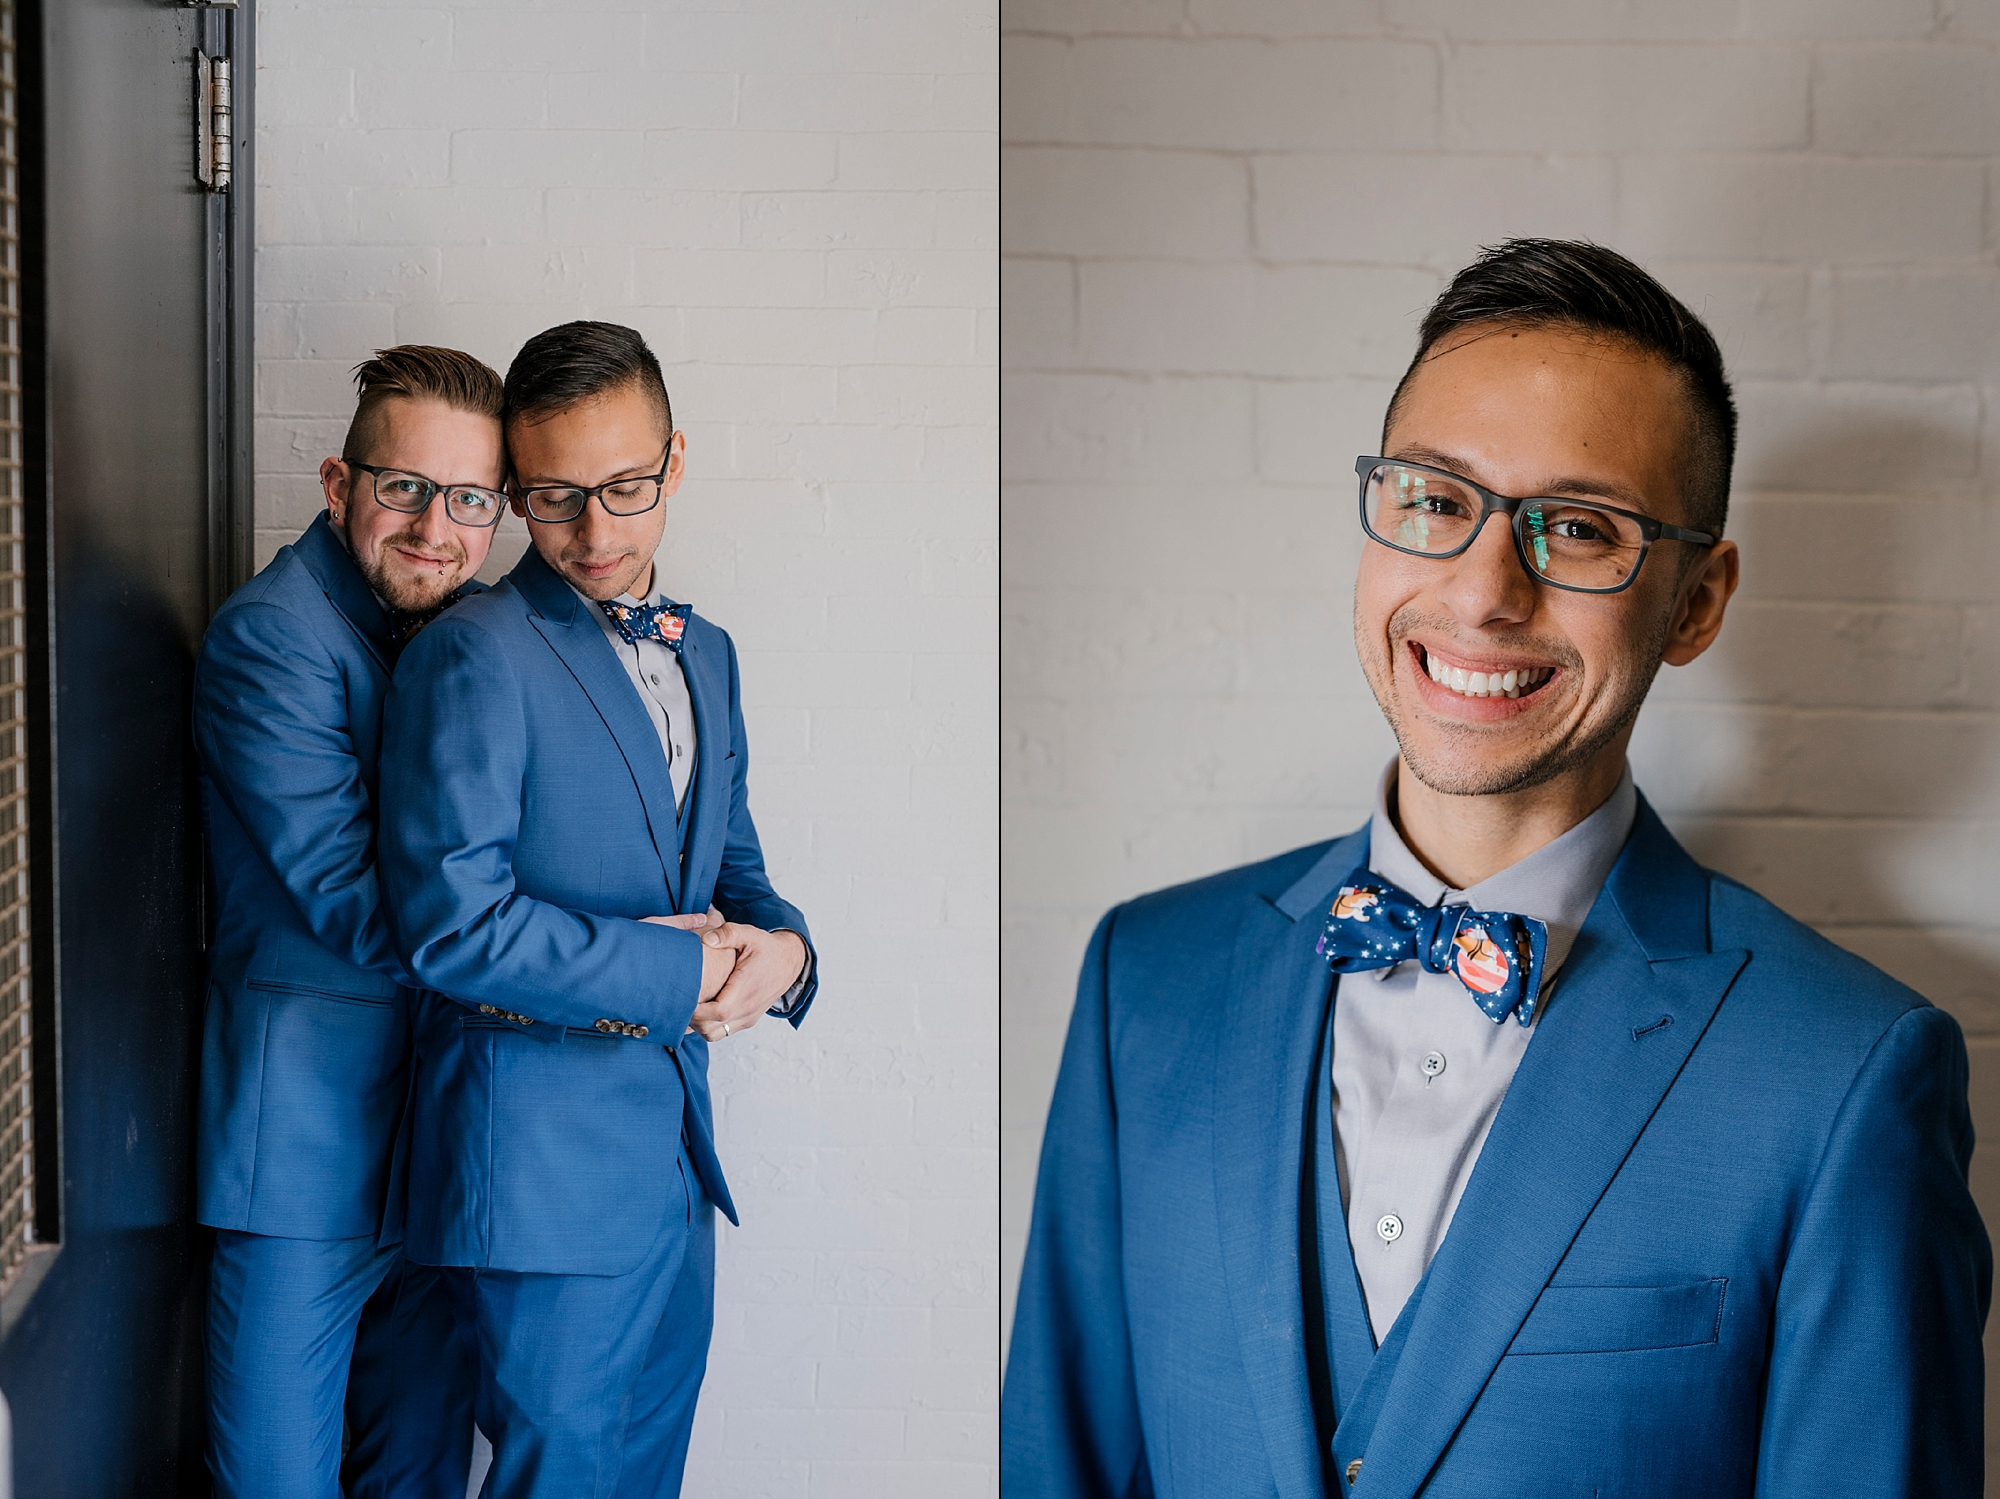 Joe_Mac_Creative_Philadelphia_Philly_LGBT_Gay_Engagement_Wedding_Photography__0114.jpg